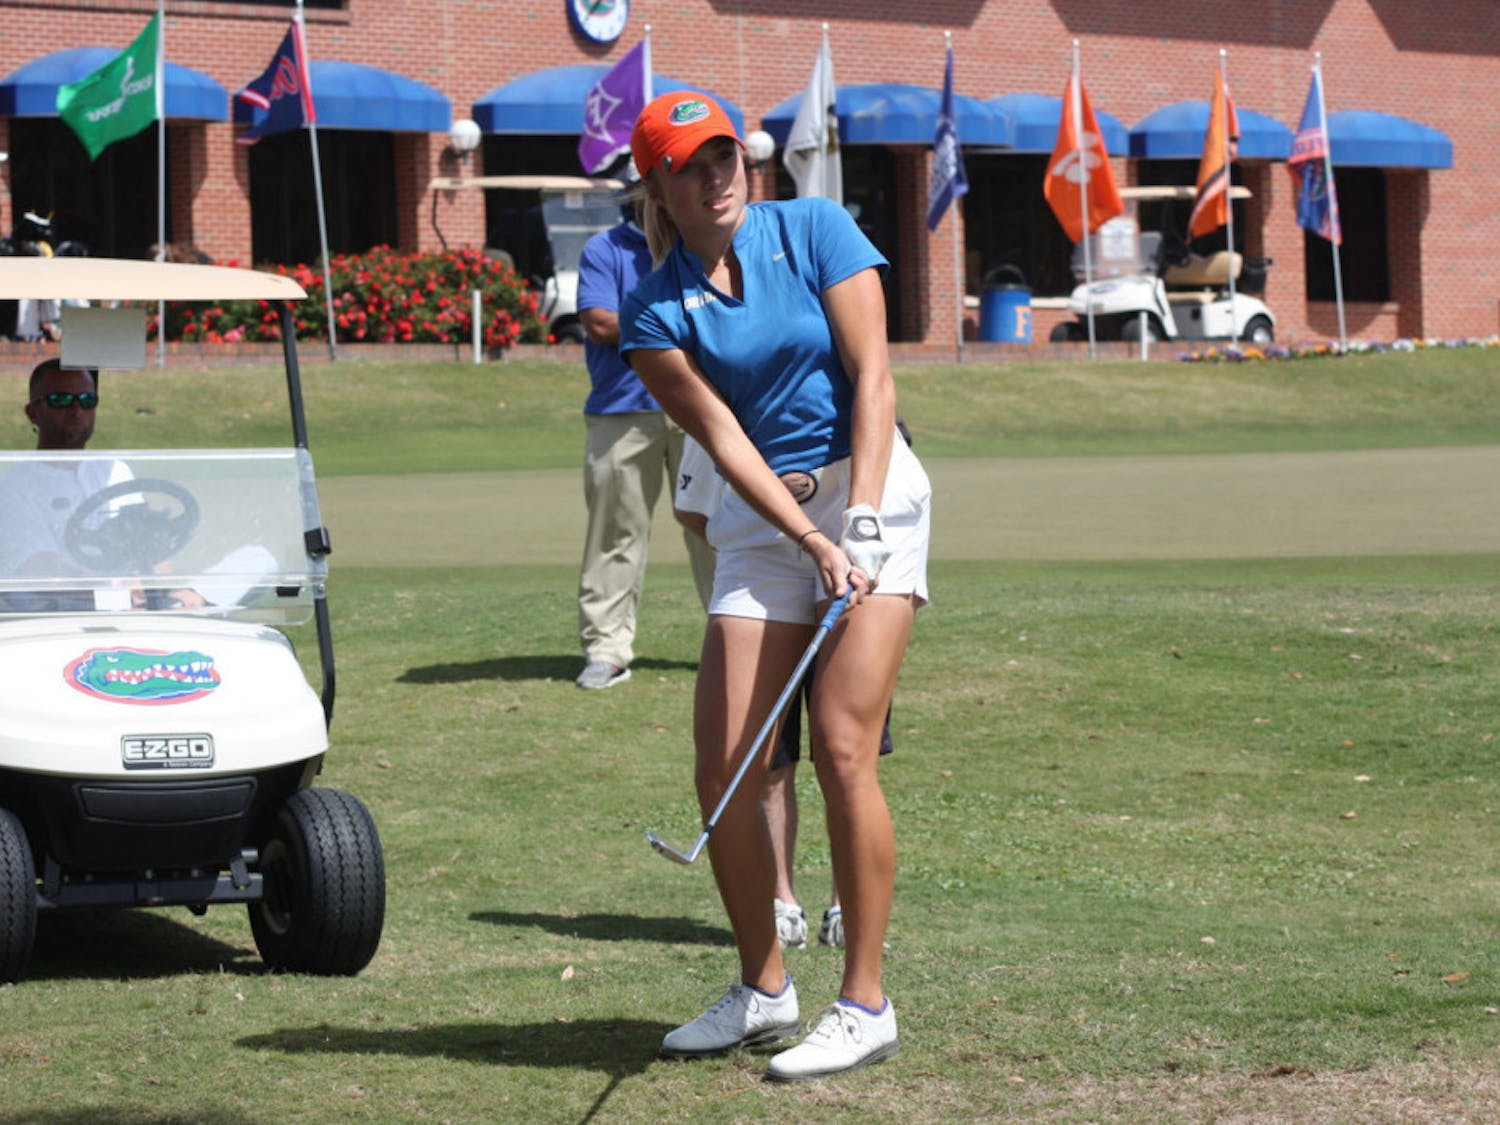 UF women's golfers Sierra Brooks (pictured) and Marta Perez were excused for theLiz Murphy Collegiate Classic after they competed in theinaugural Augusta National Women's Amatuer last weekend.